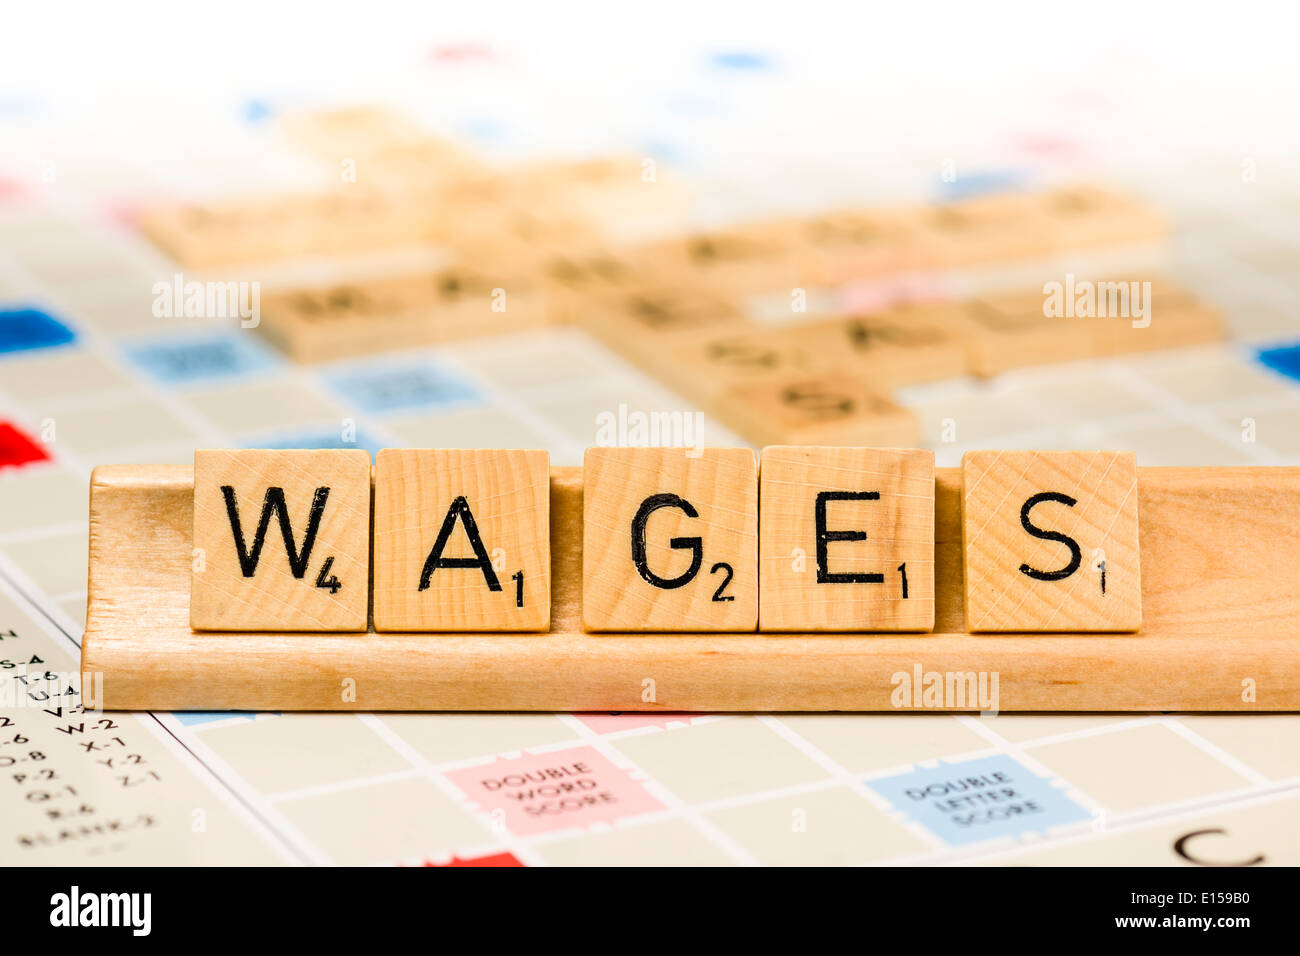 Scrabble - Wages - Stock Image